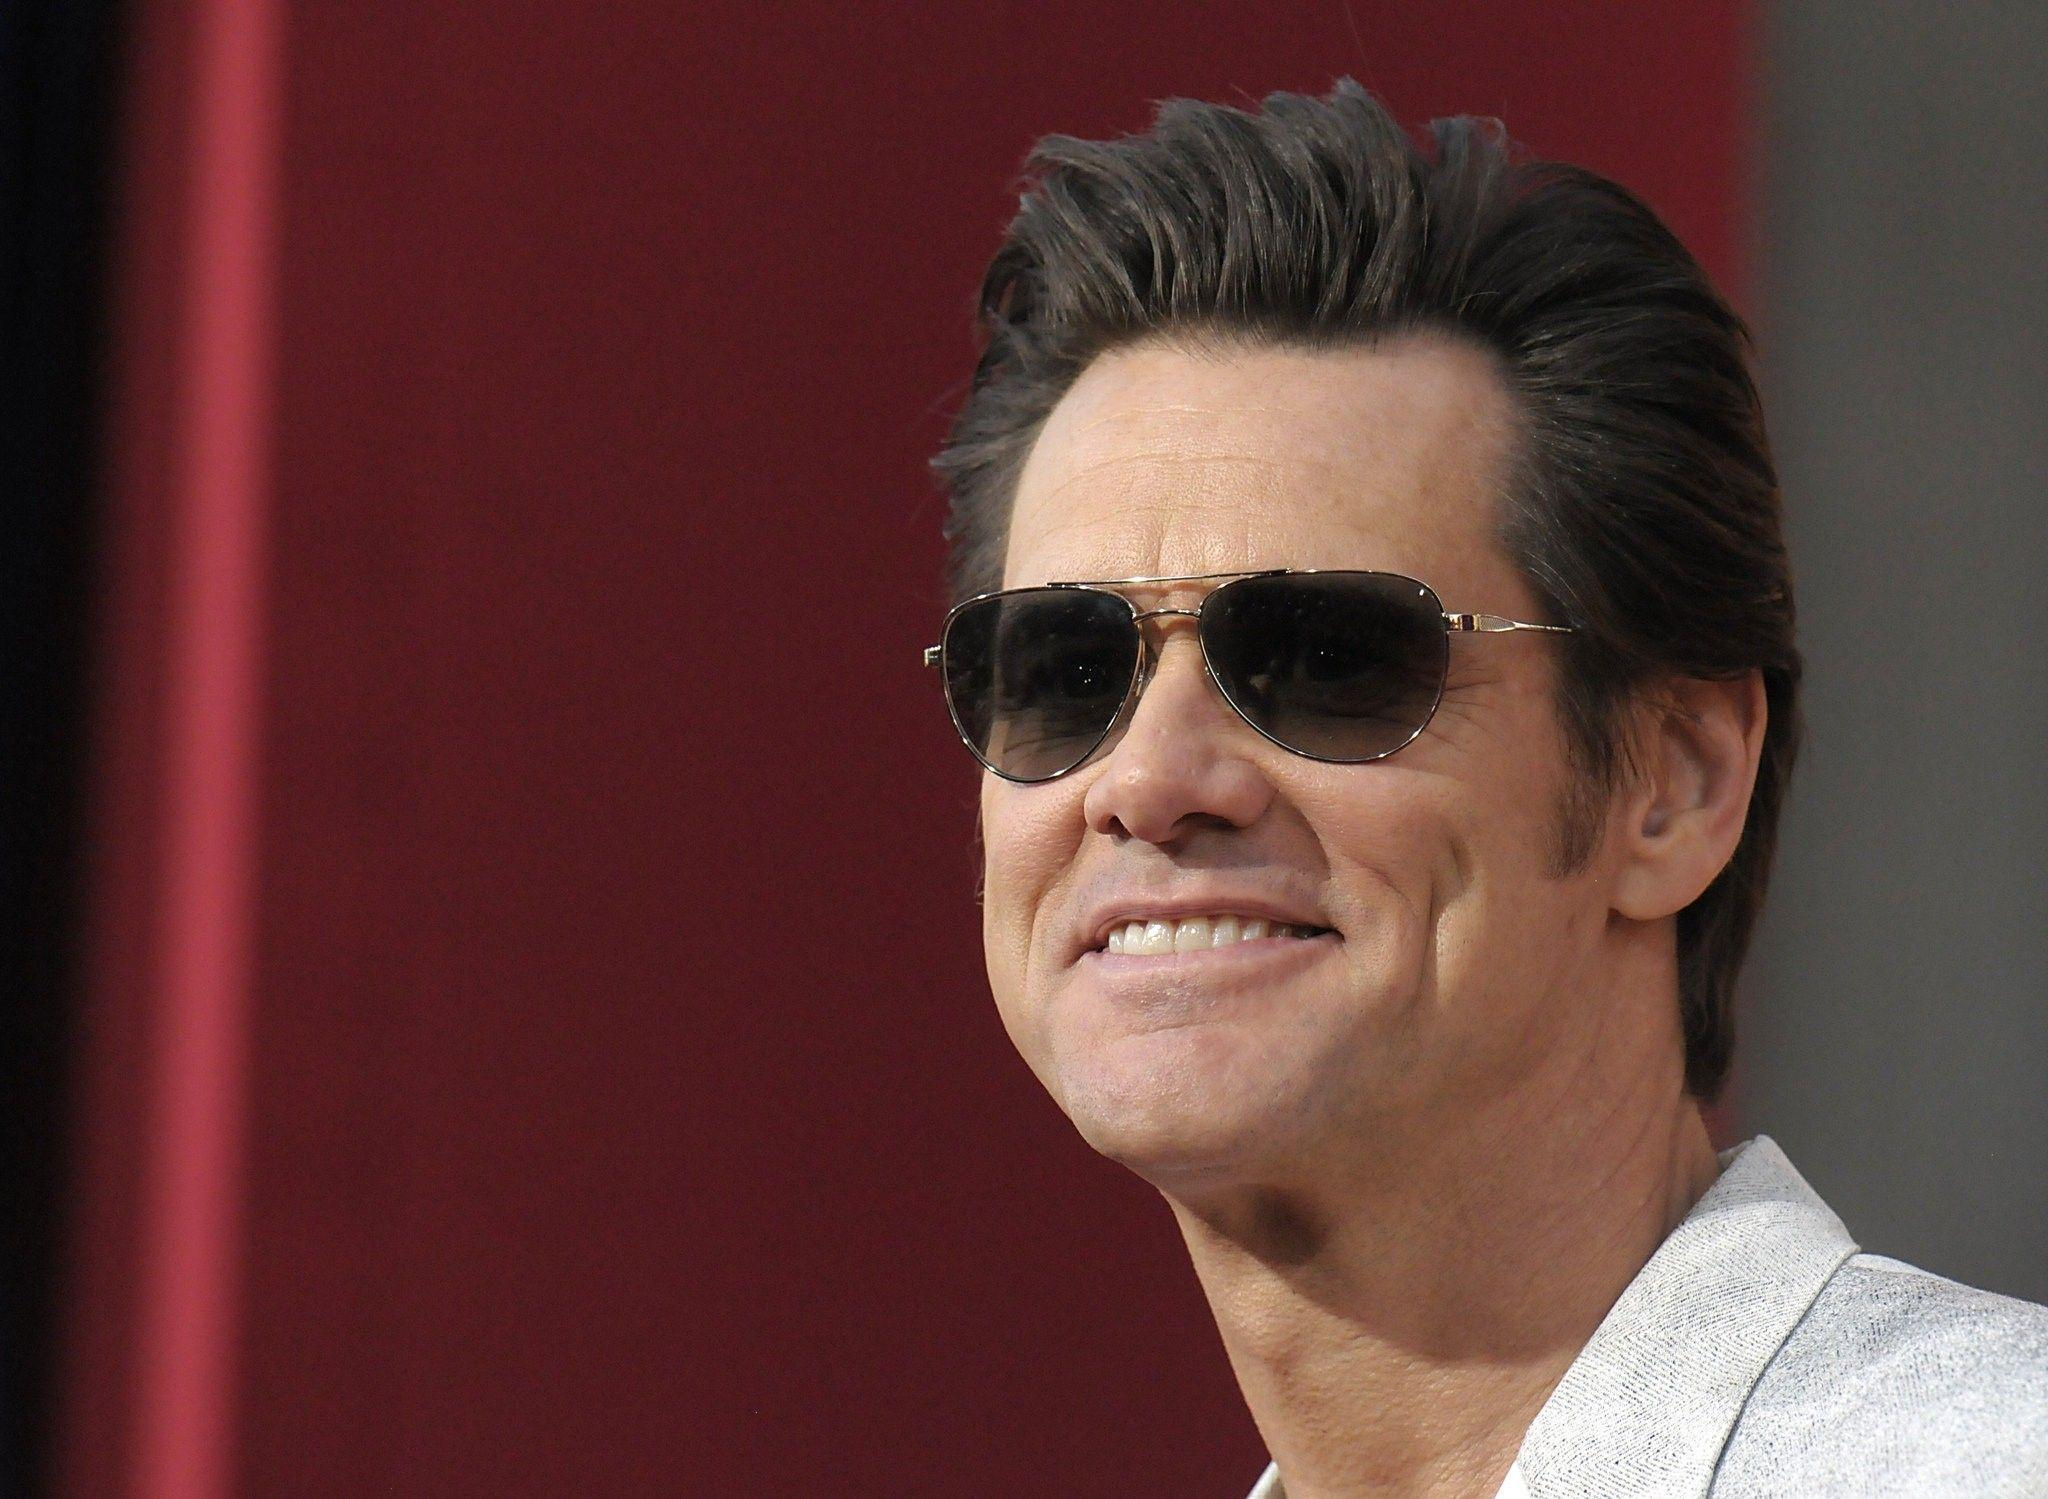 Jim Carrey Wallpapers | Free Download HD Hollywood Celebrities Images